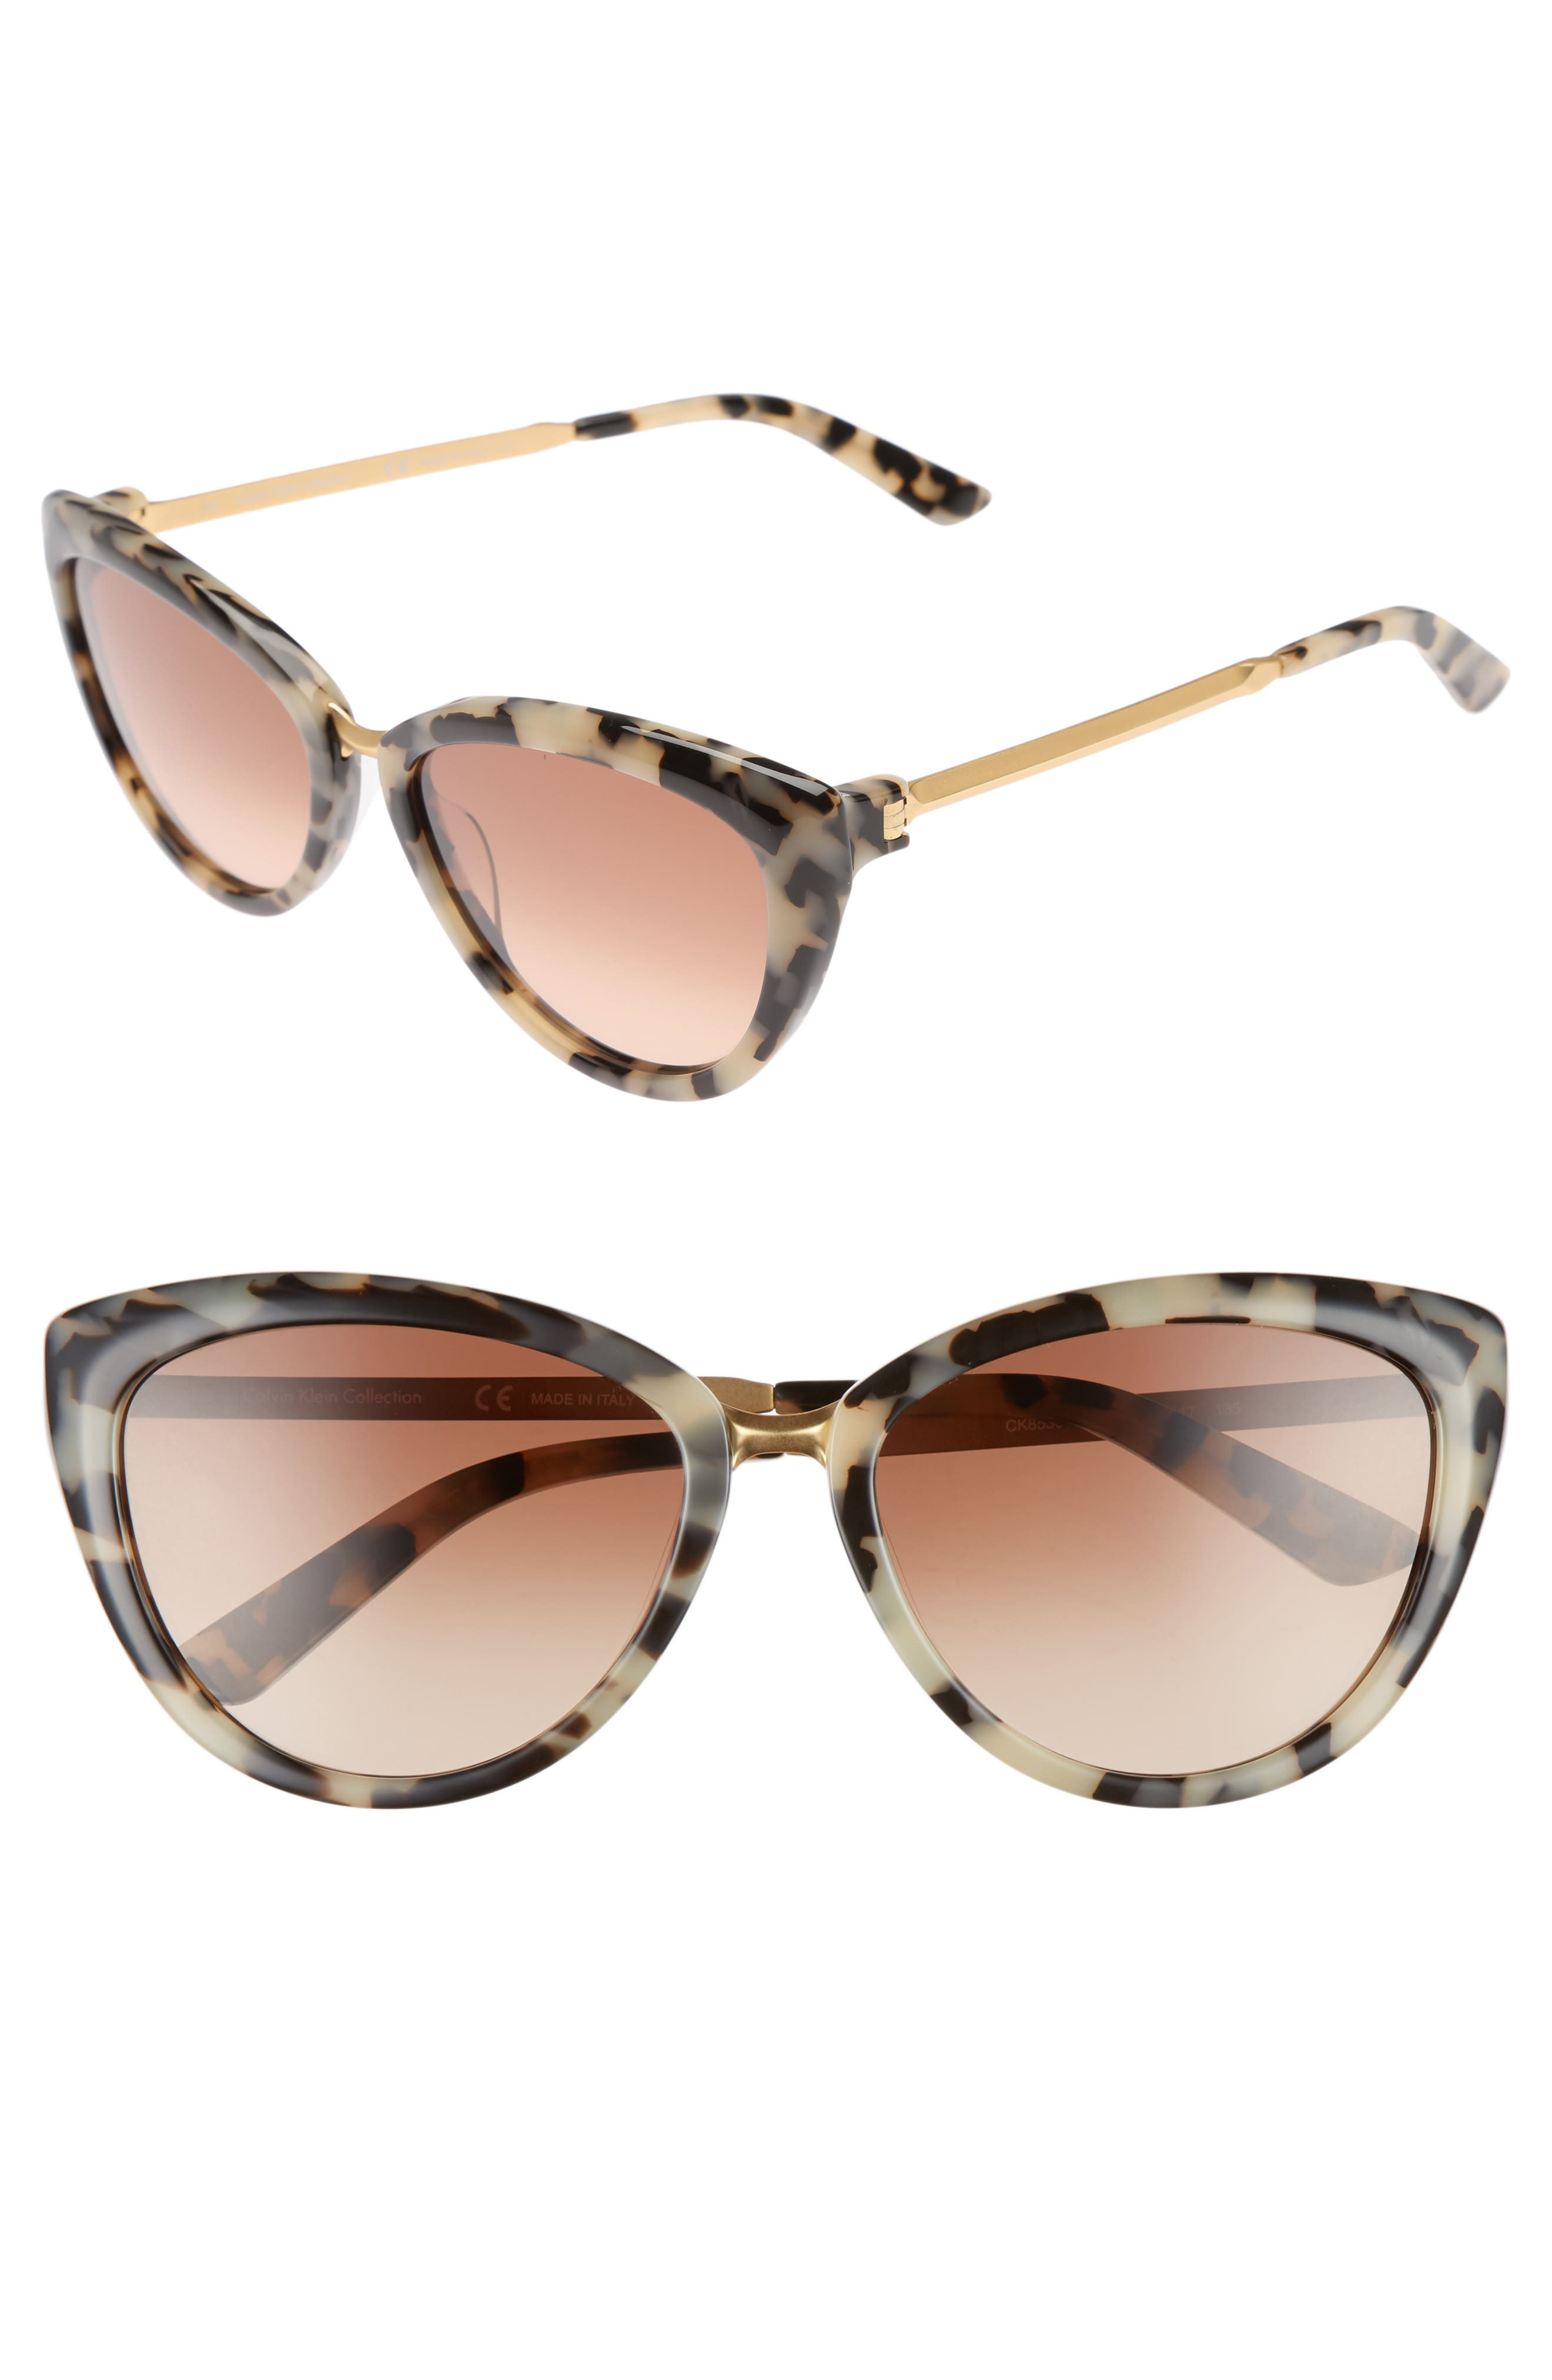 Main Image - CALVIN KLEIN 56mm Cat Eye Sunglasses